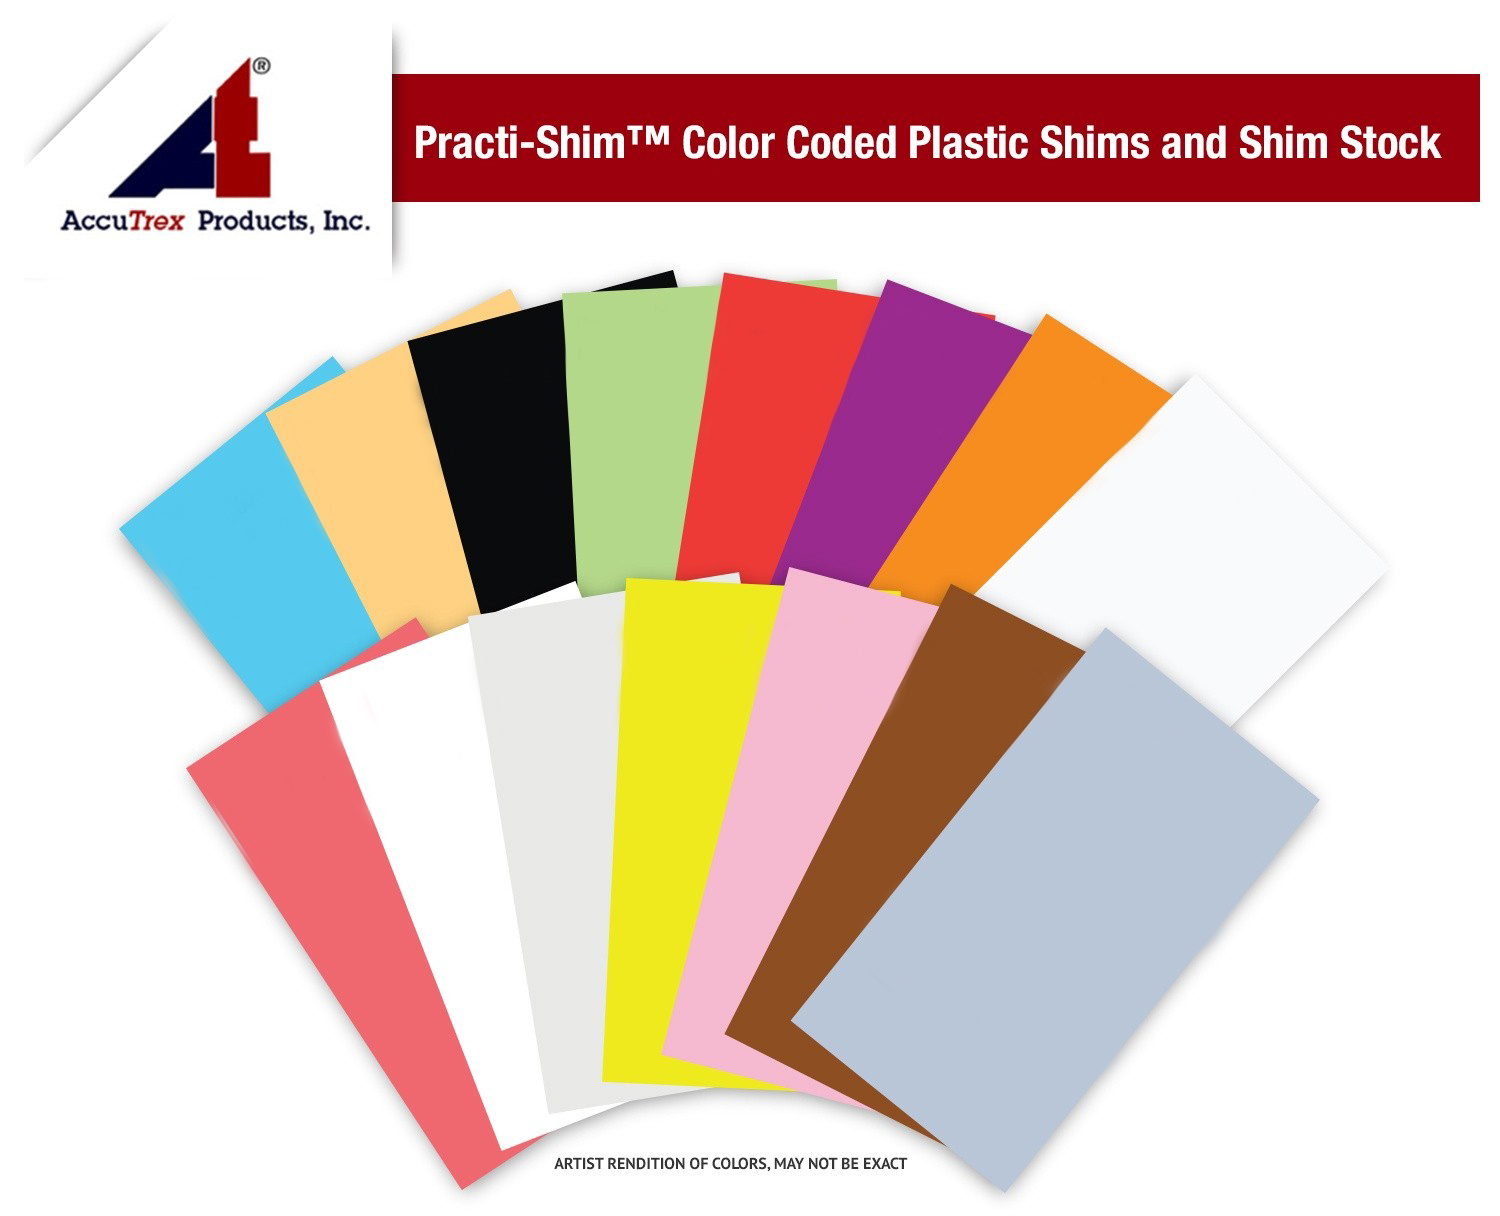 Practi-Shim™ Color Coded Plastic Shim Stock